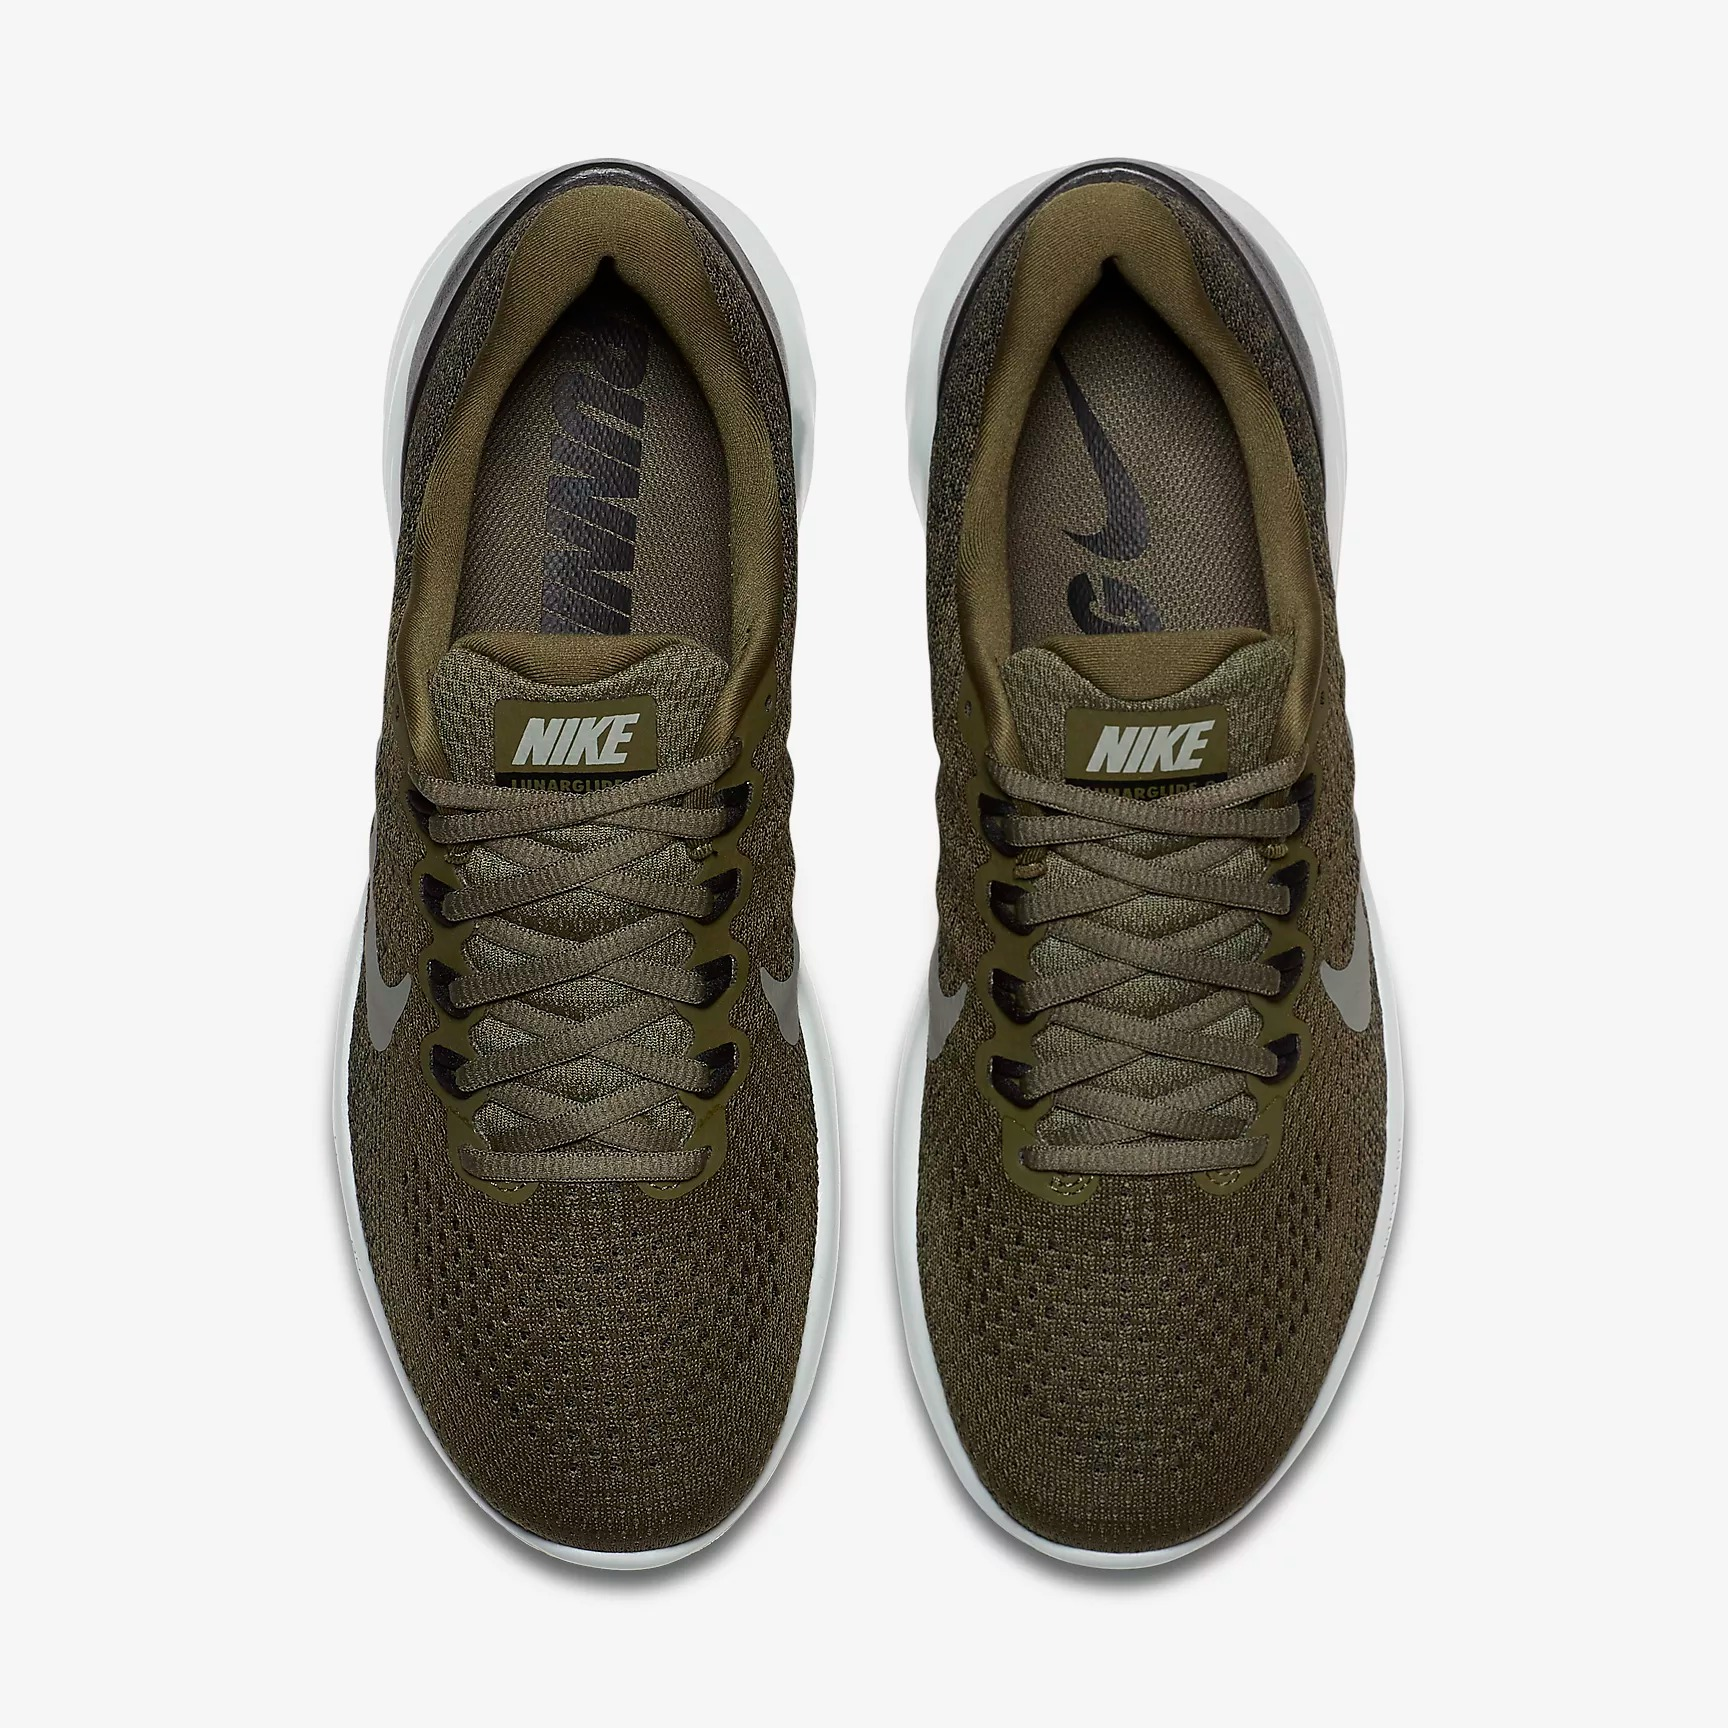 Nike LunarGlide 9 Running Shoes - SPORT SHOES RUNNING SHOES ... 23679fdc7